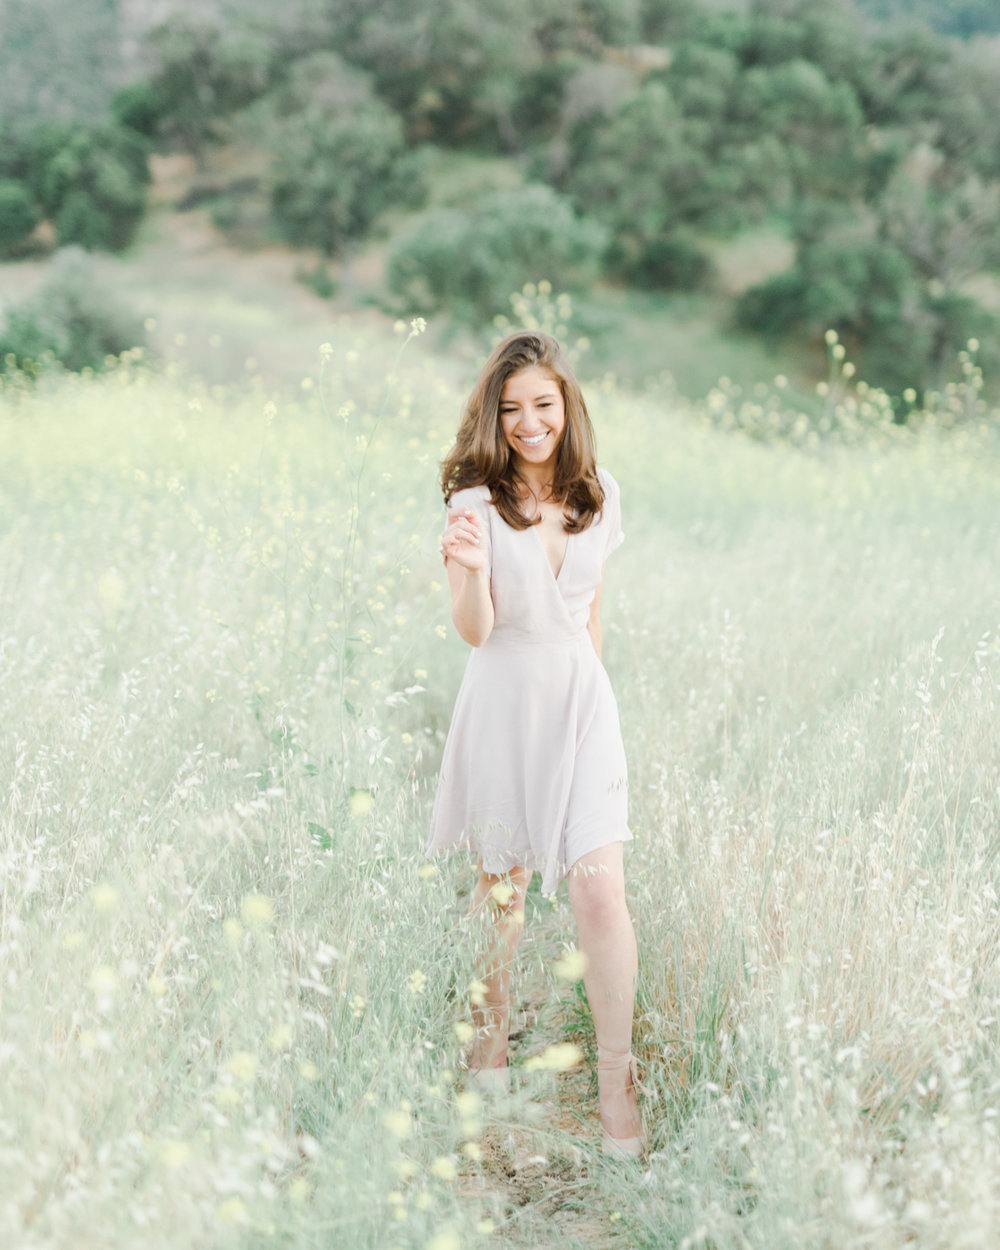 a&a_malibu_creek_state_park_engagement_session_los_angeles_fine_art_wedding_photographer-27.jpg